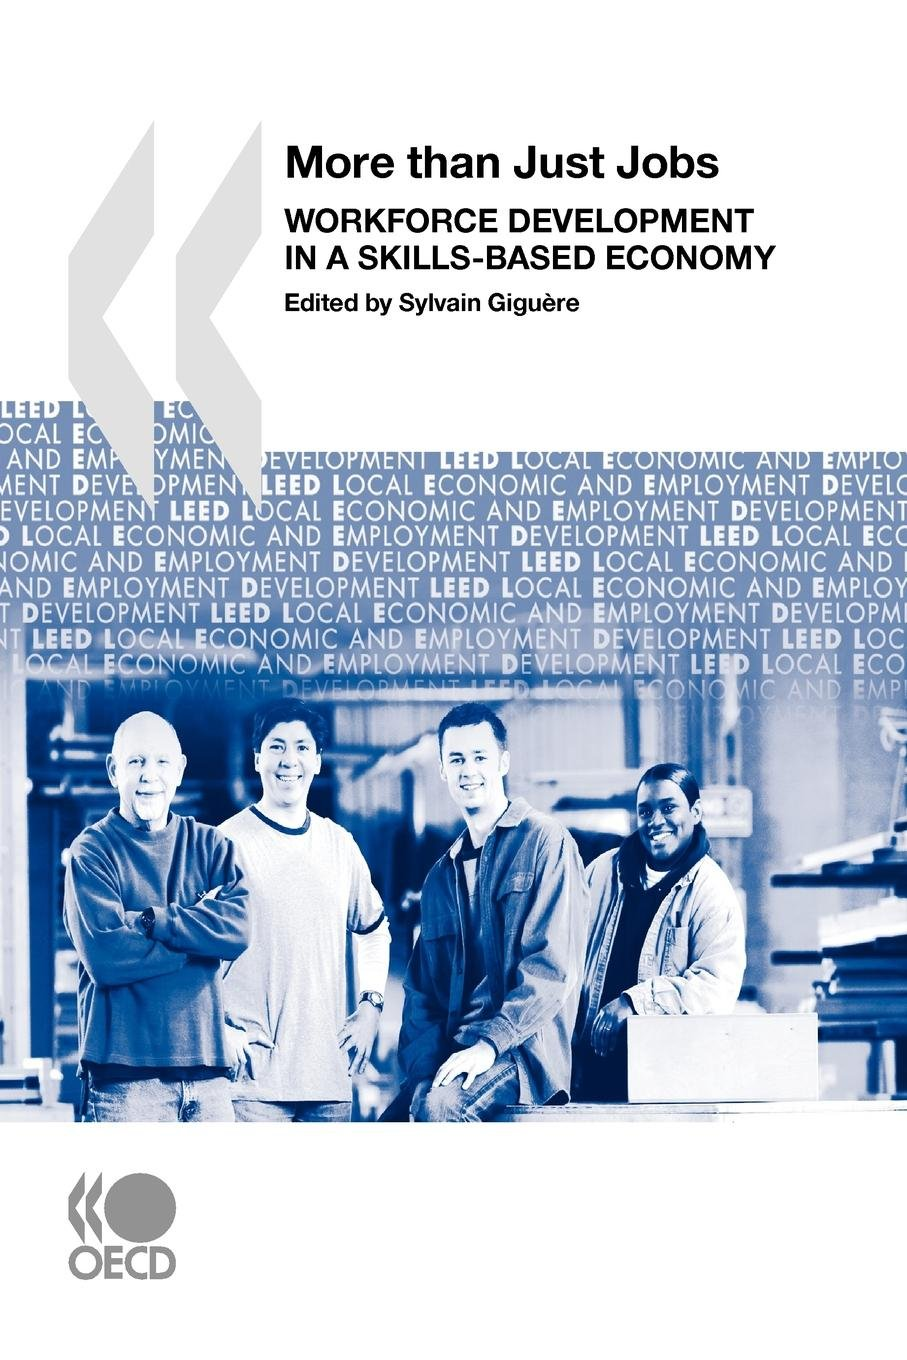 More than Just Jobs: Workforce Development in a Skills-Based Economy